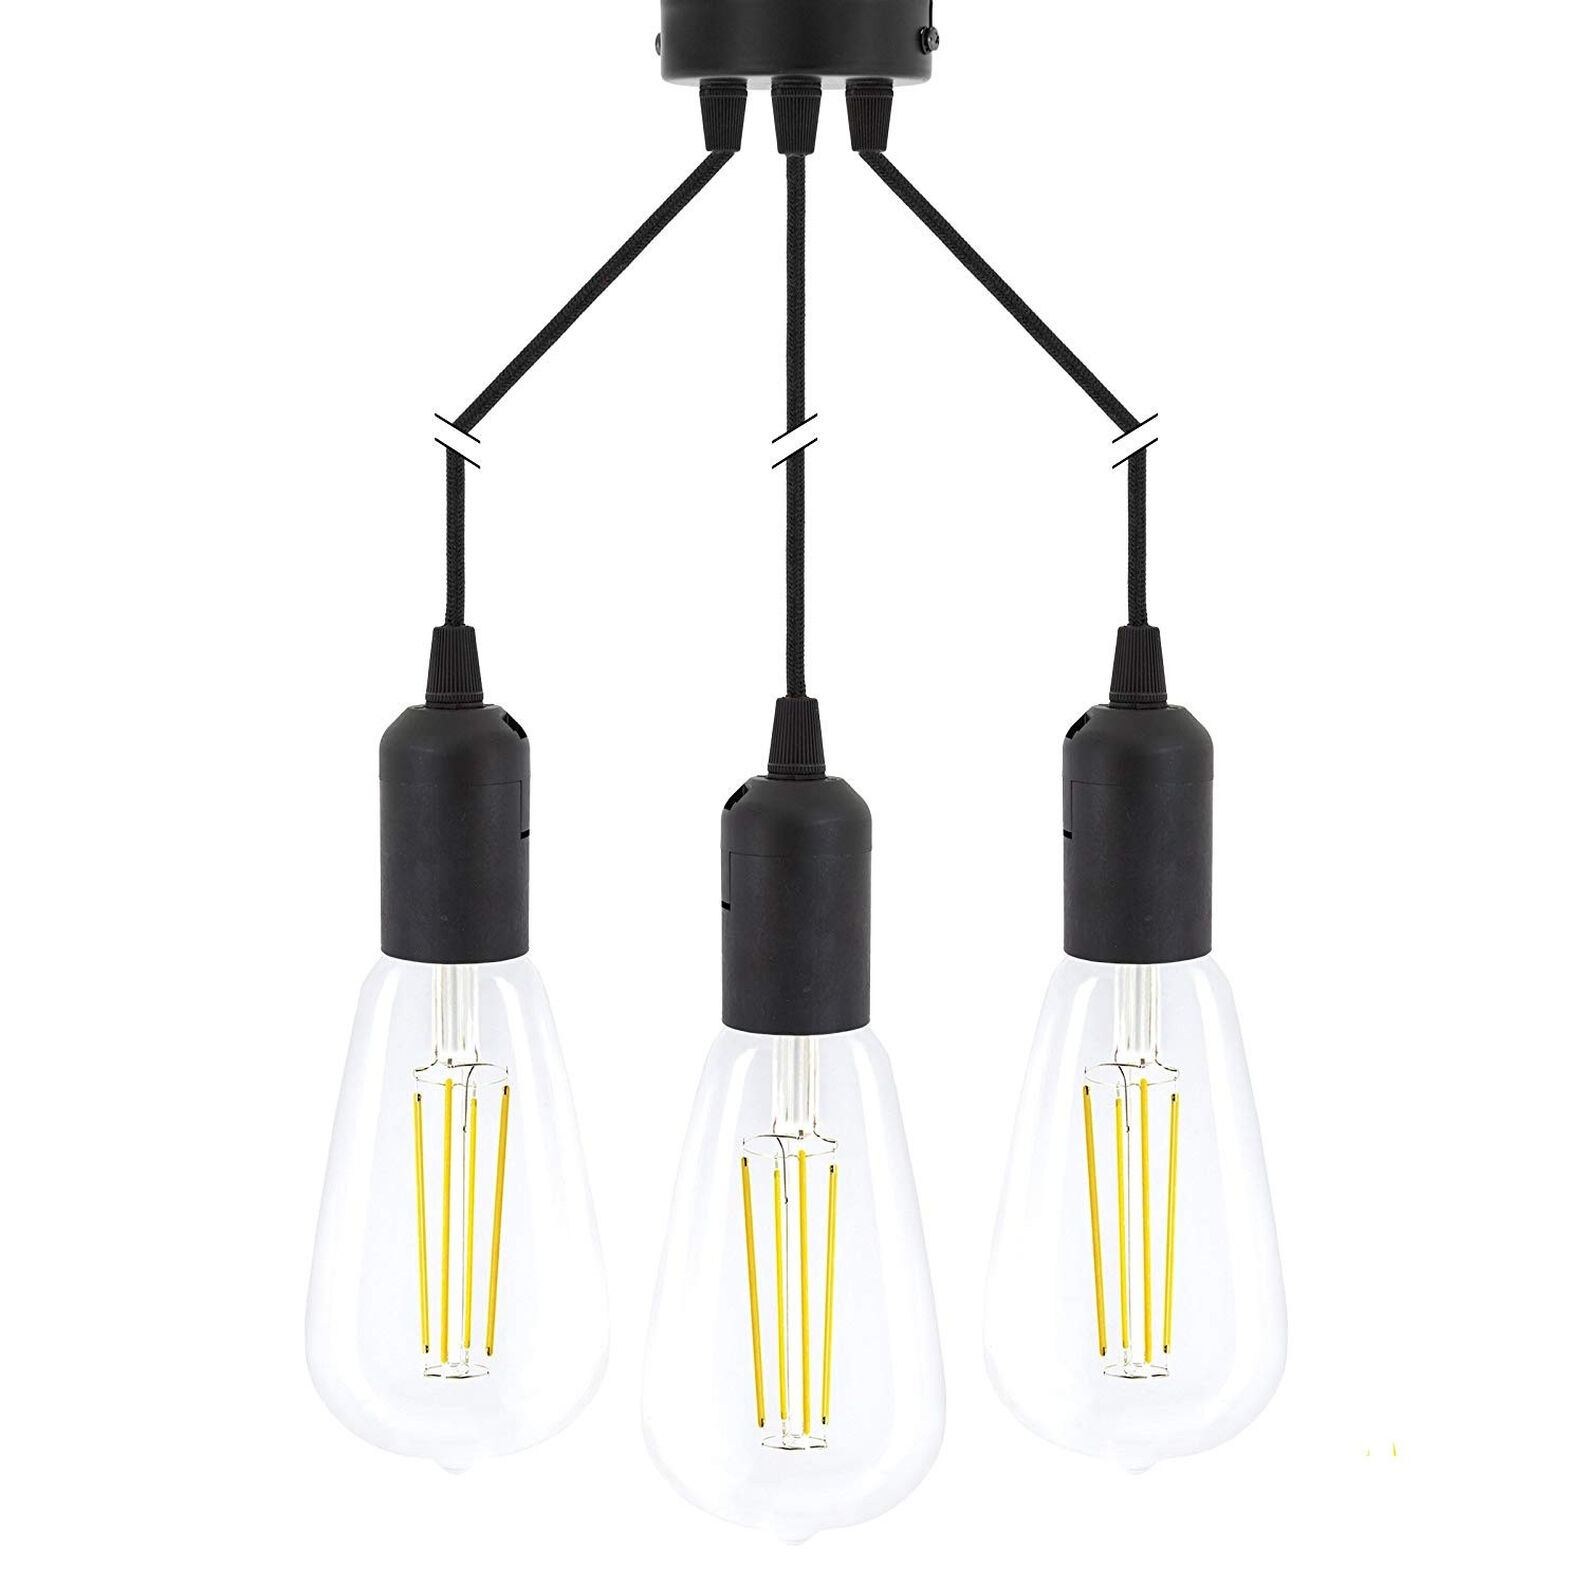 LEDbyLED Berny suspension lamp